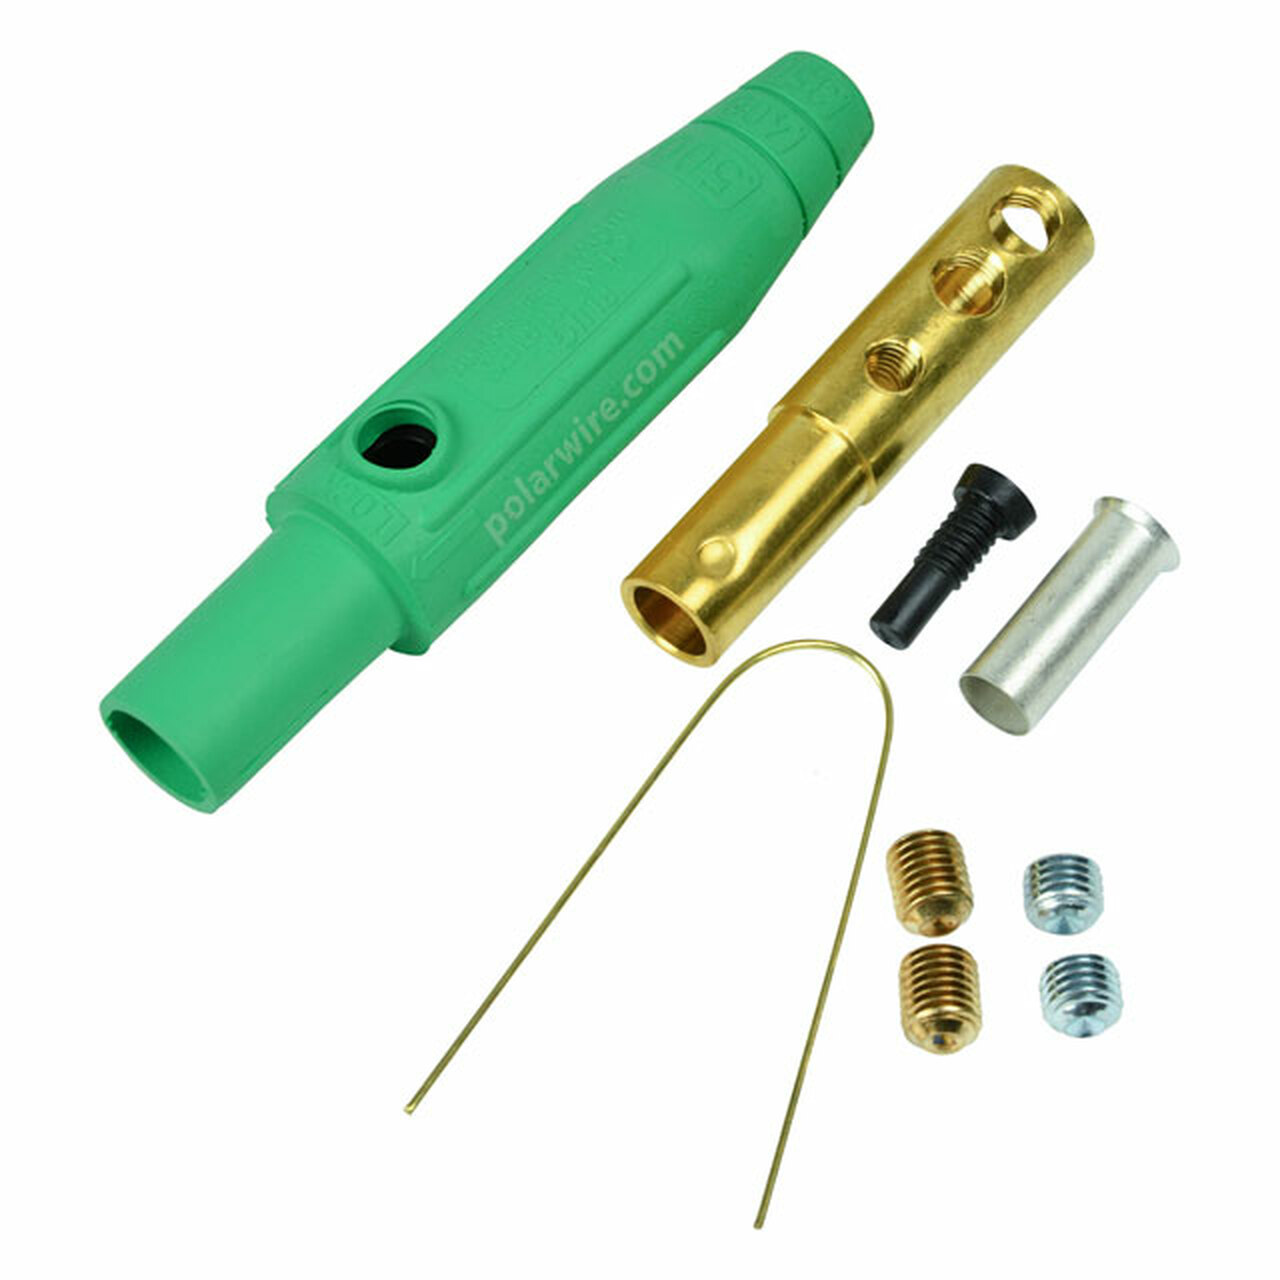 CAM LOCK 150A FEMALE GREEN 8-2 AWG